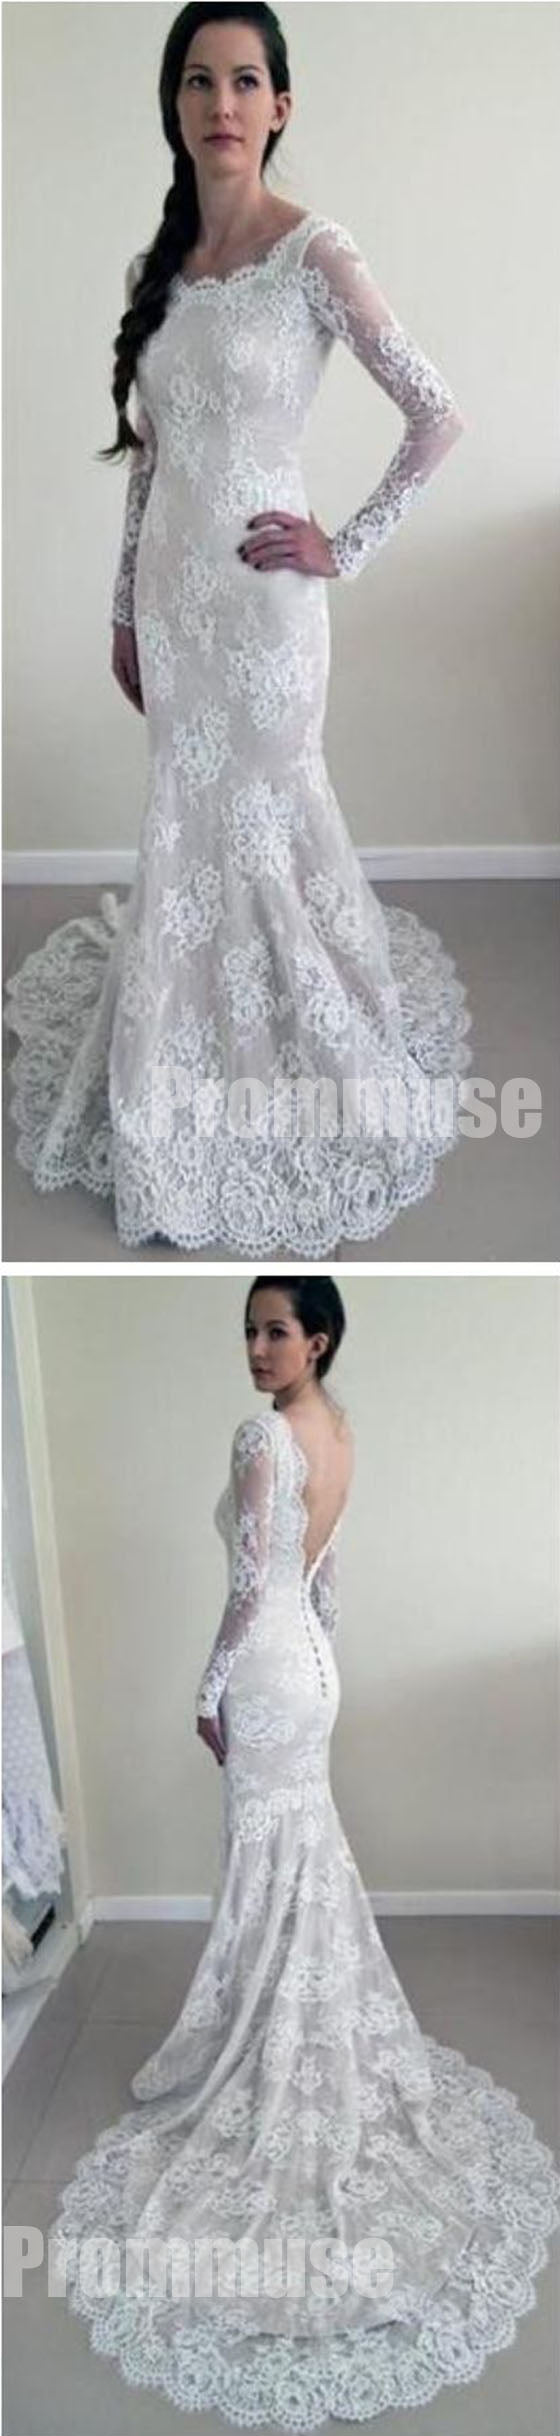 Long Sleeves Mermaid Backless Lace Long Cheap Wedding Dresses, PM0642